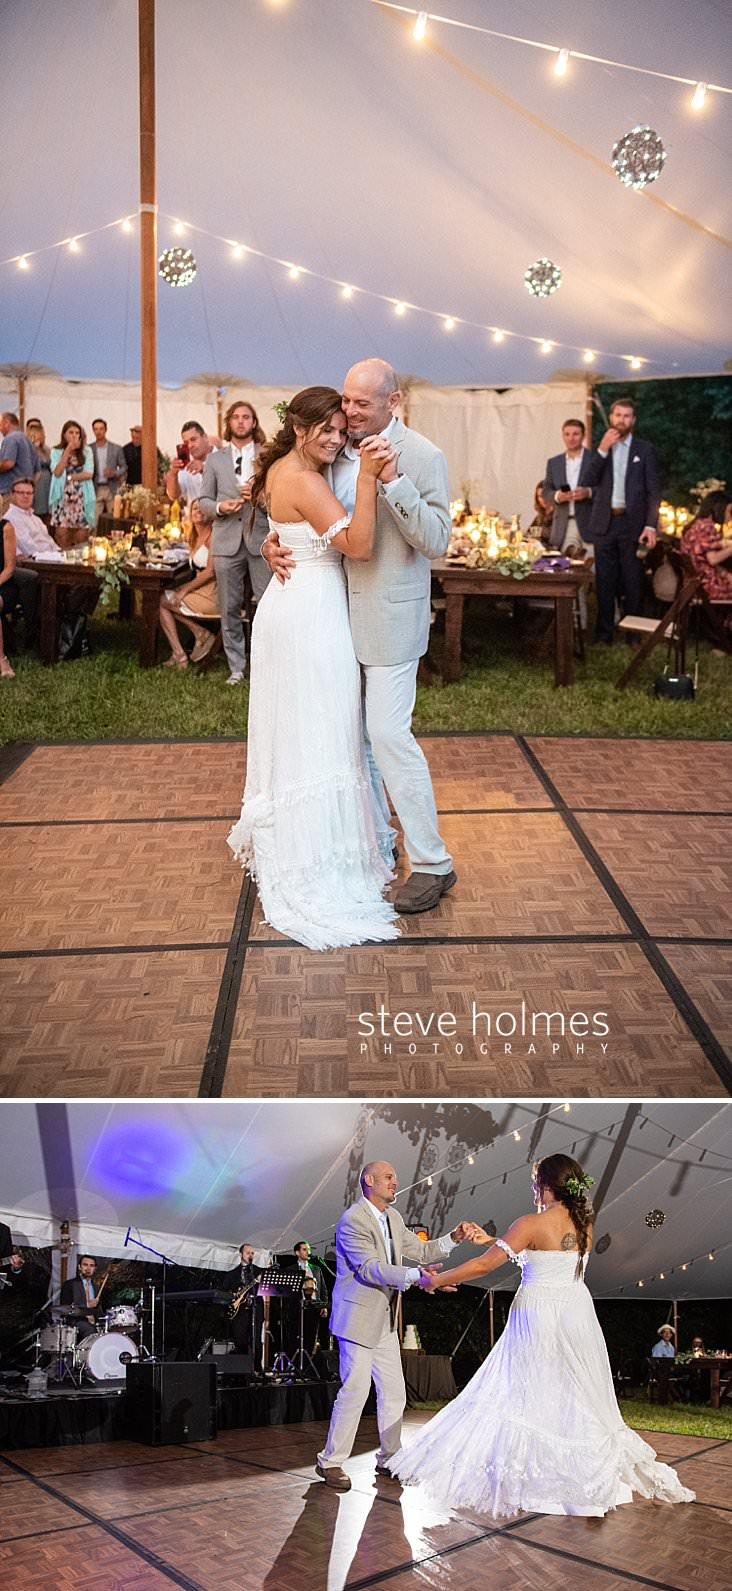 84_Bride shares dance with her father under tent.jpg